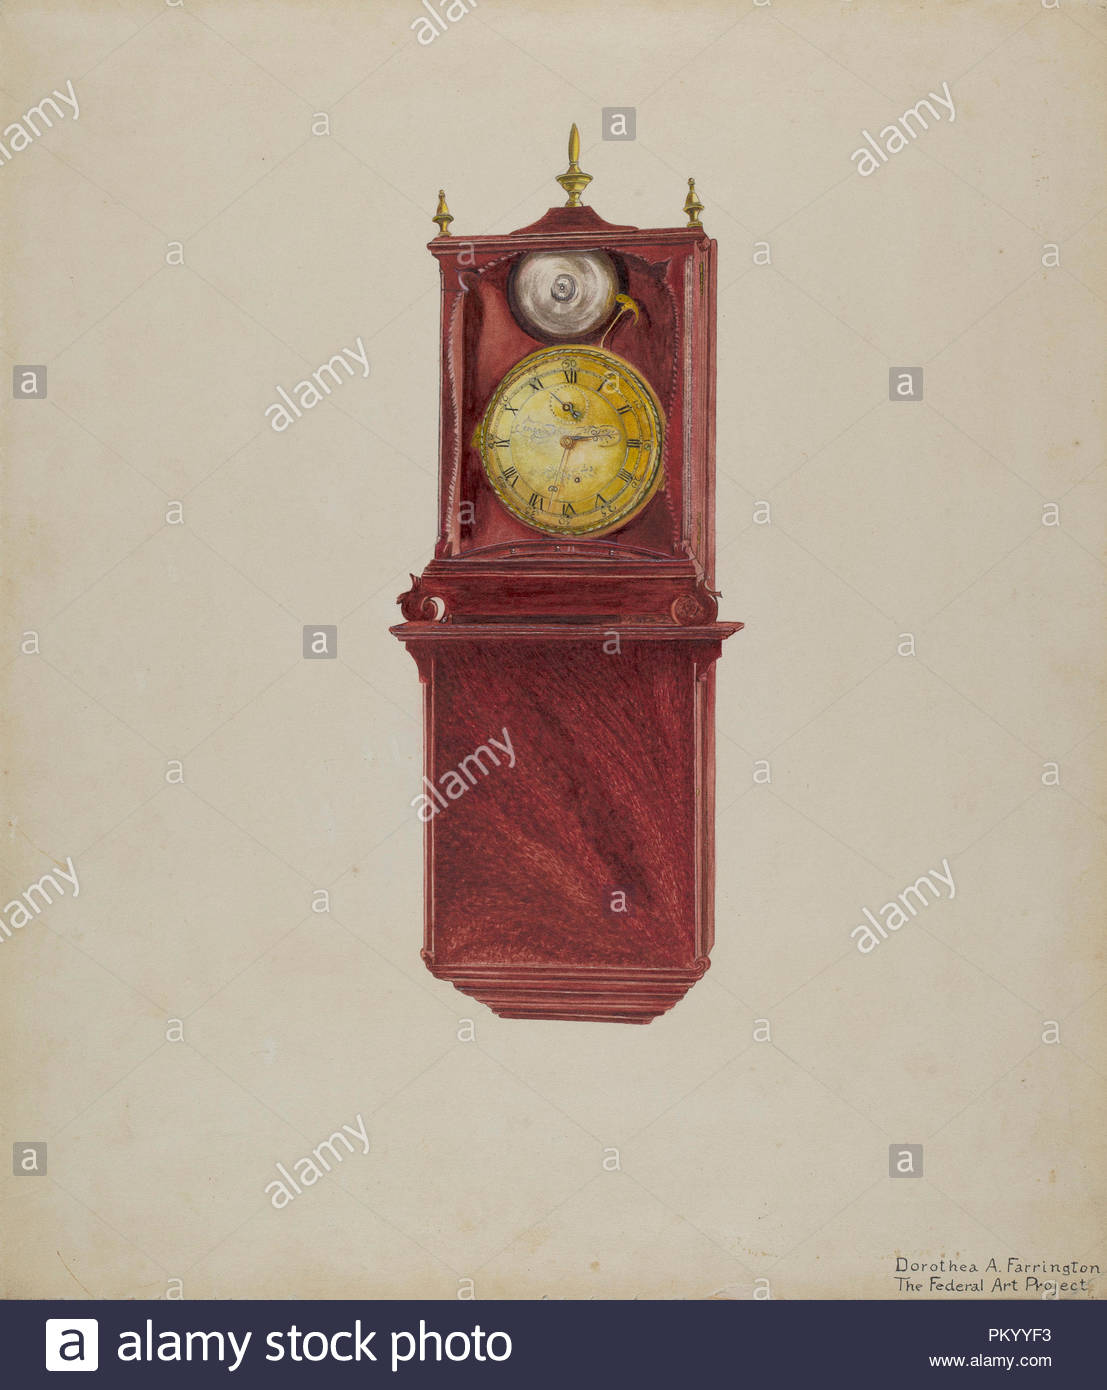 84d37b261290 Wall Clock Antique. Dated  c. 1938. Dimensions  overall  35.6 x 30.5 cm (14  x 12 in.) Original IAD Object  22 x 8 1 4 inches.